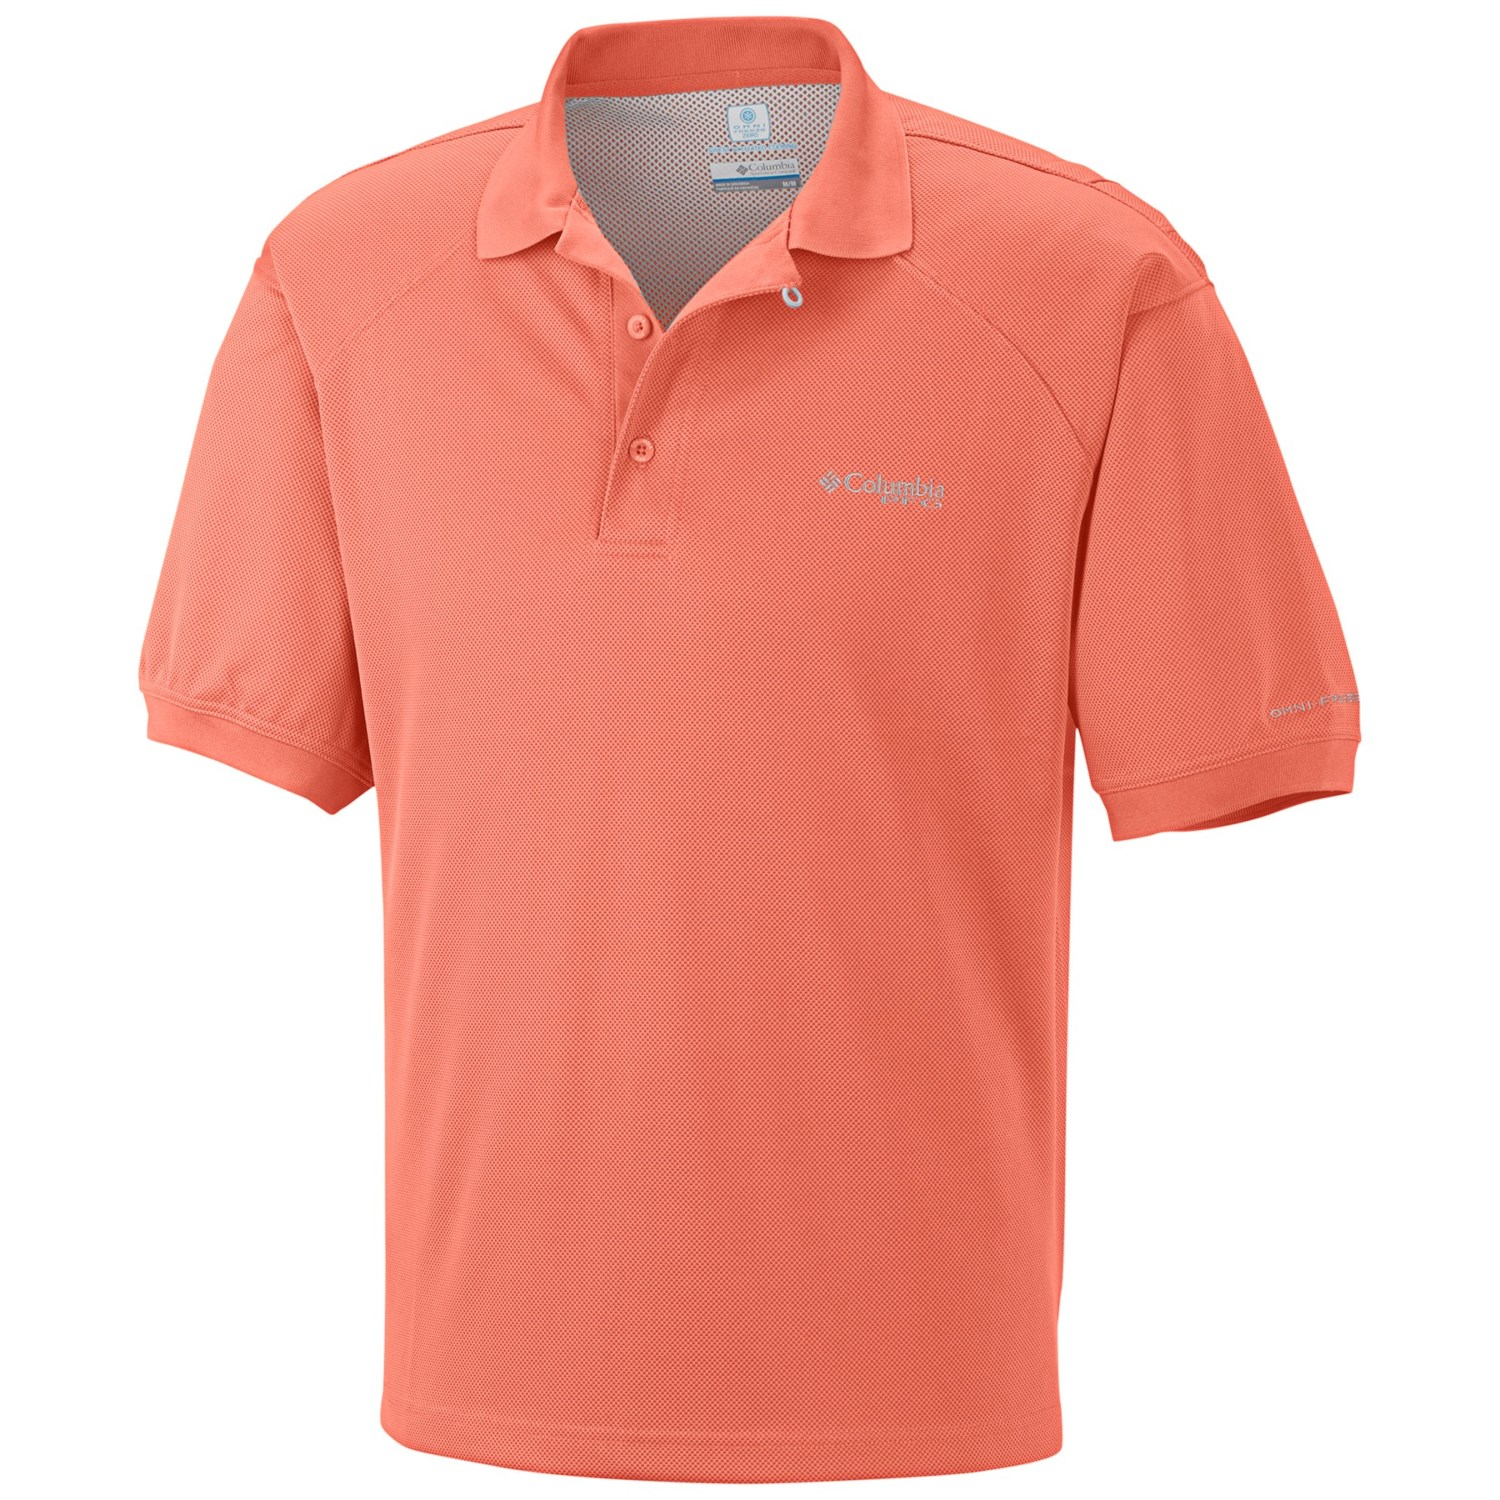 Columbia sportswear companies news videos images for What is a pfg shirt